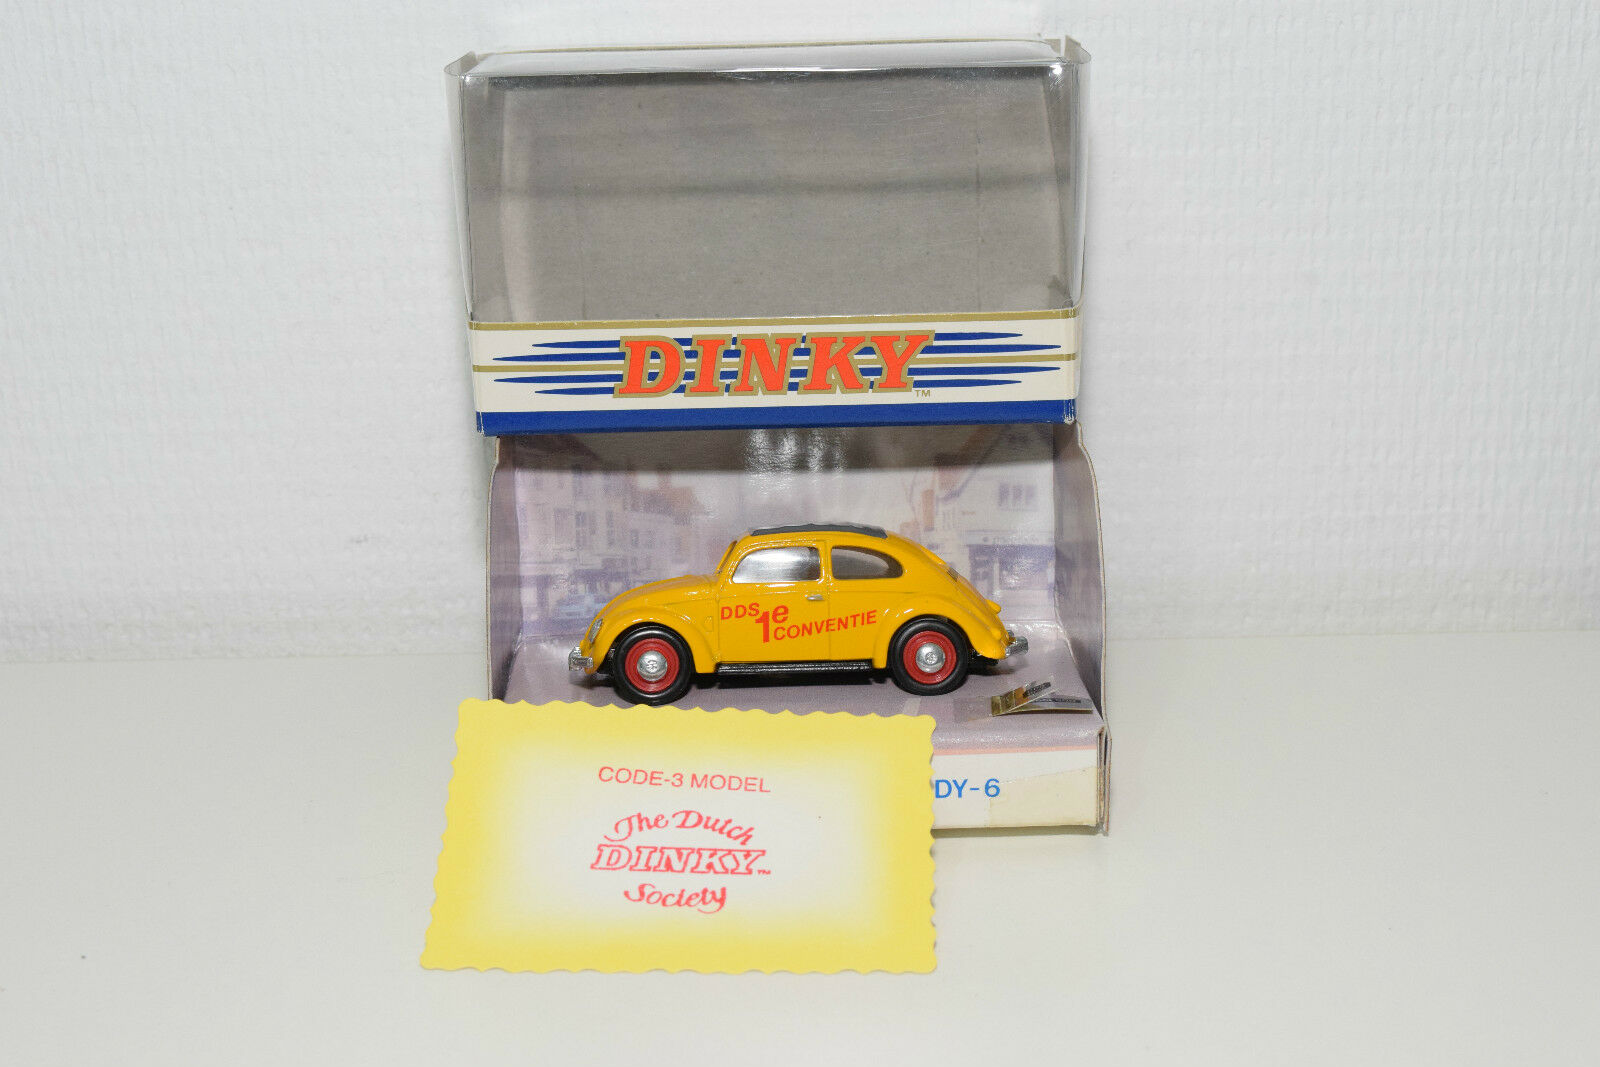 DINKY MATCHBOX VW VOLKSWAGEN BEETLE KAFER THE DUTCH DINKY SOCIETY MINT BOXED